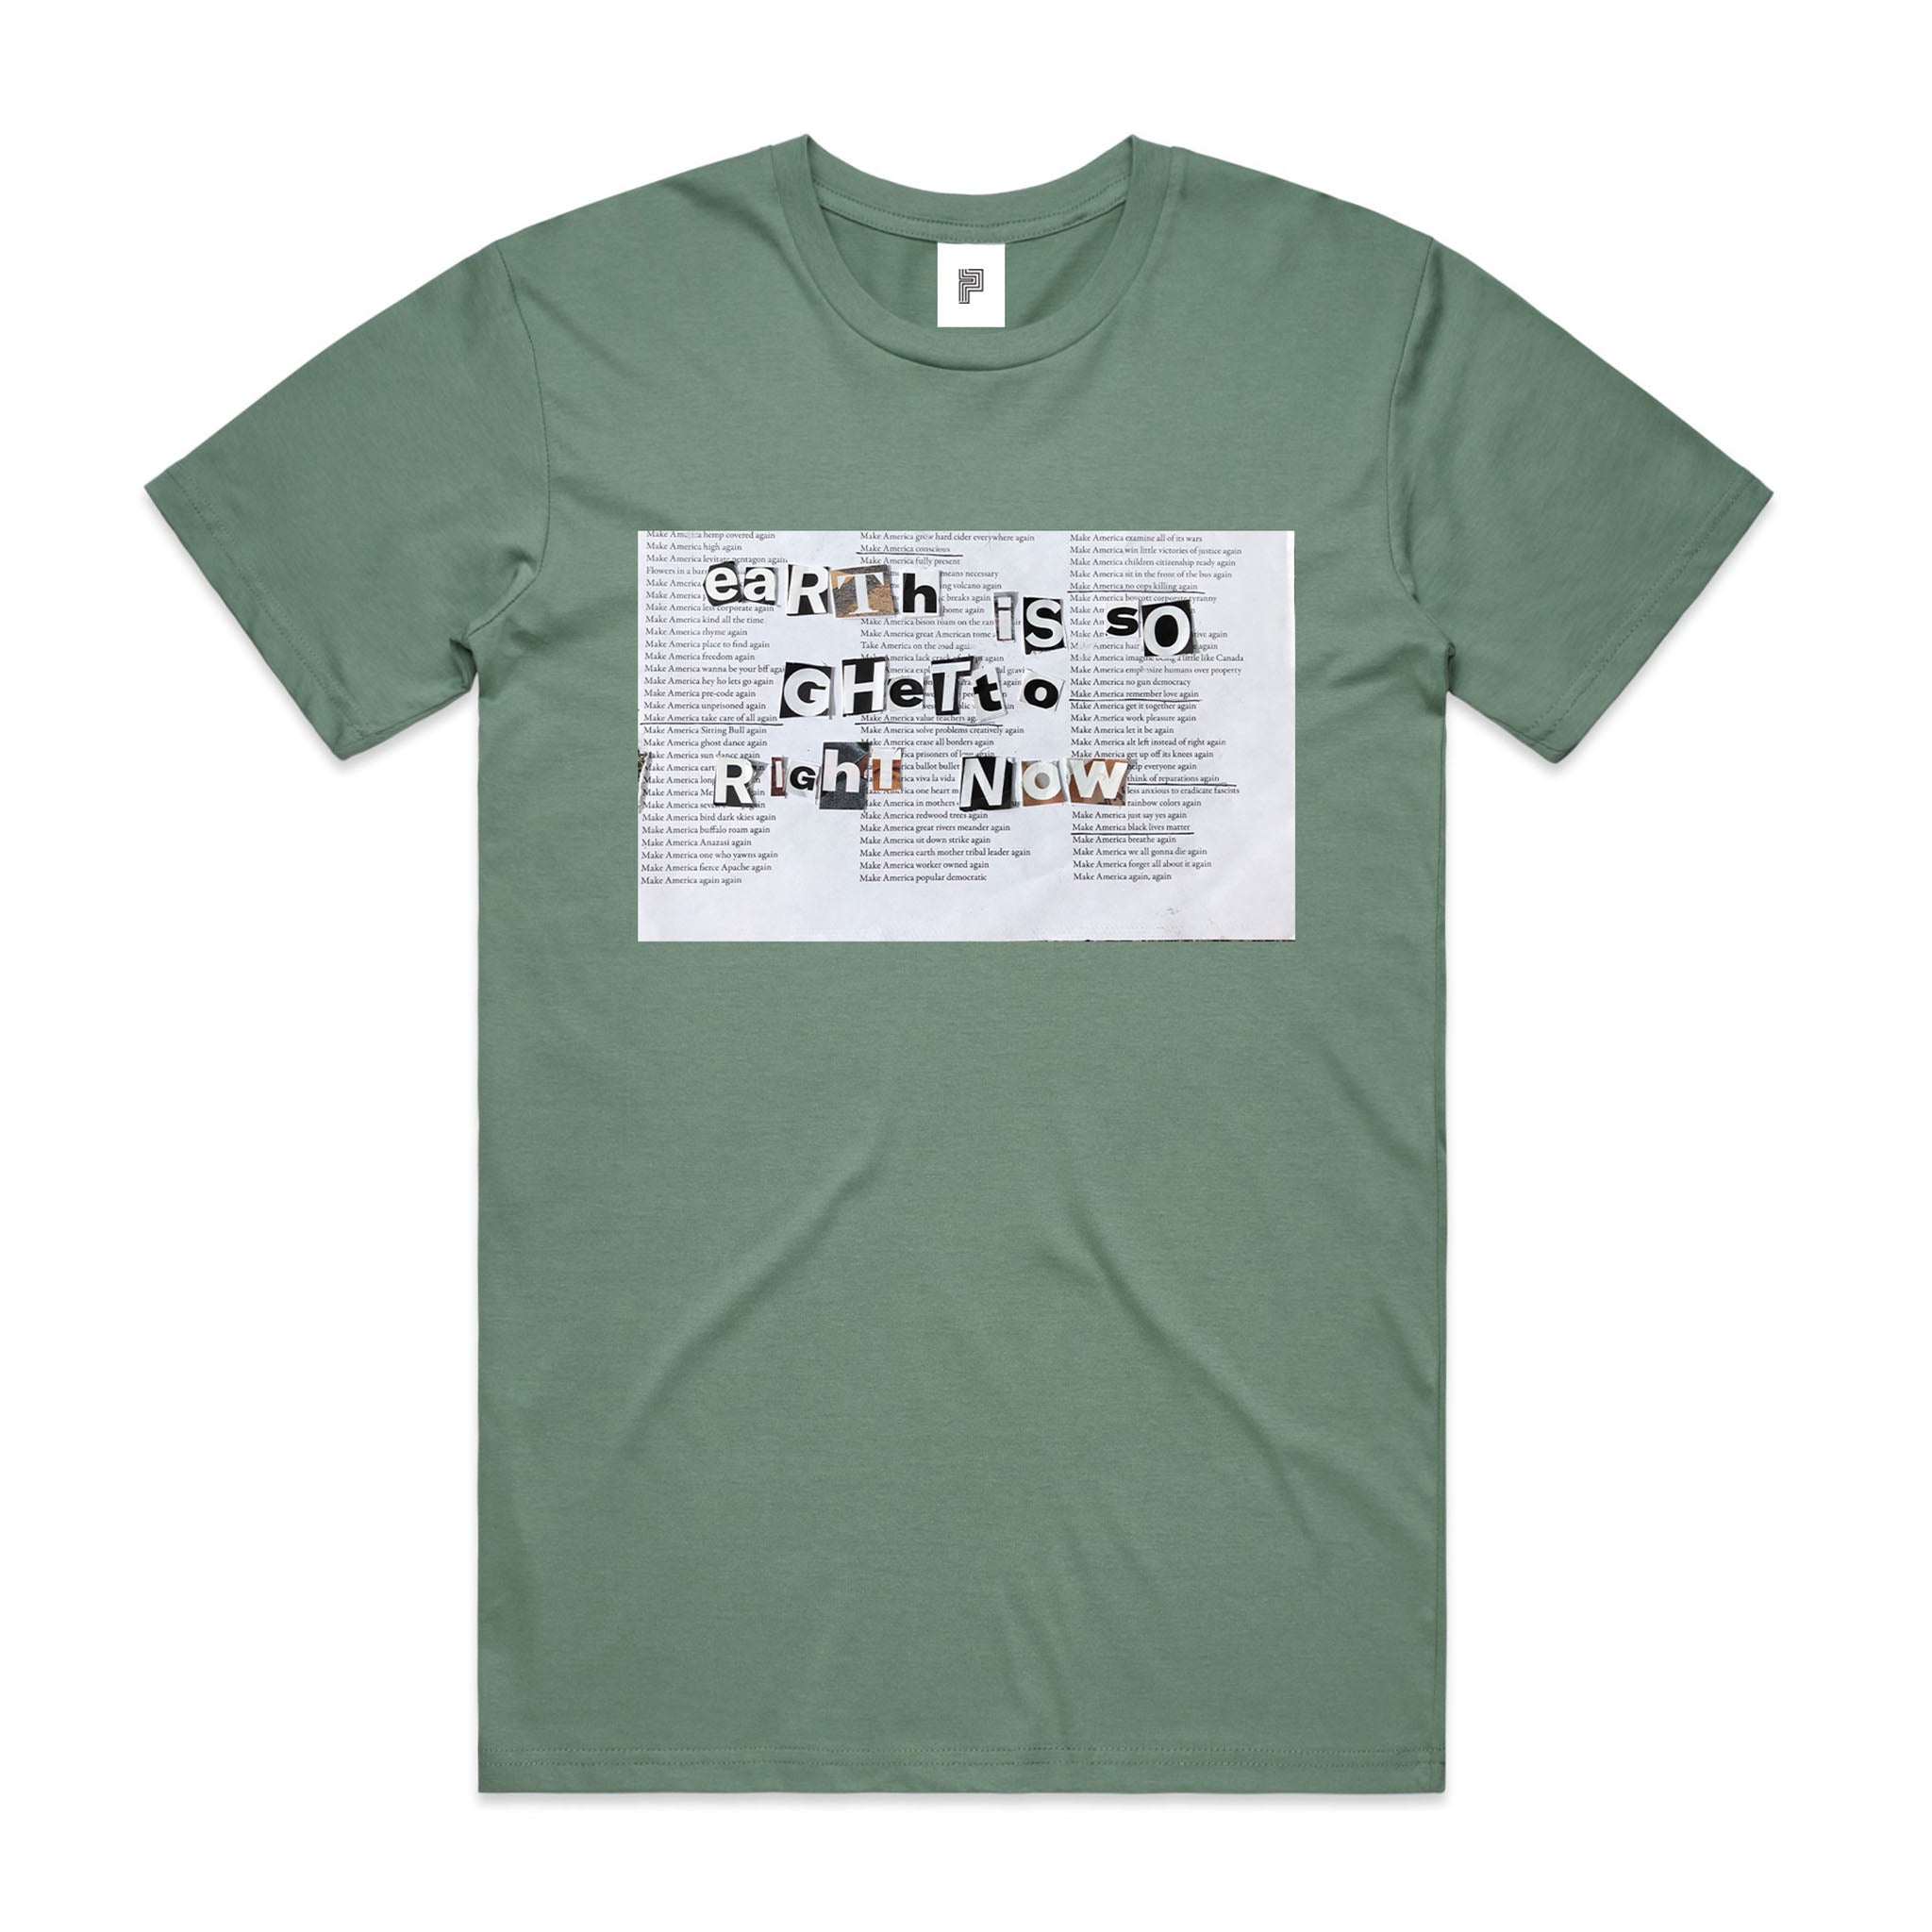 EARTH IS SO - BEATRICE DOMOND T-SHIRT [SAGE]